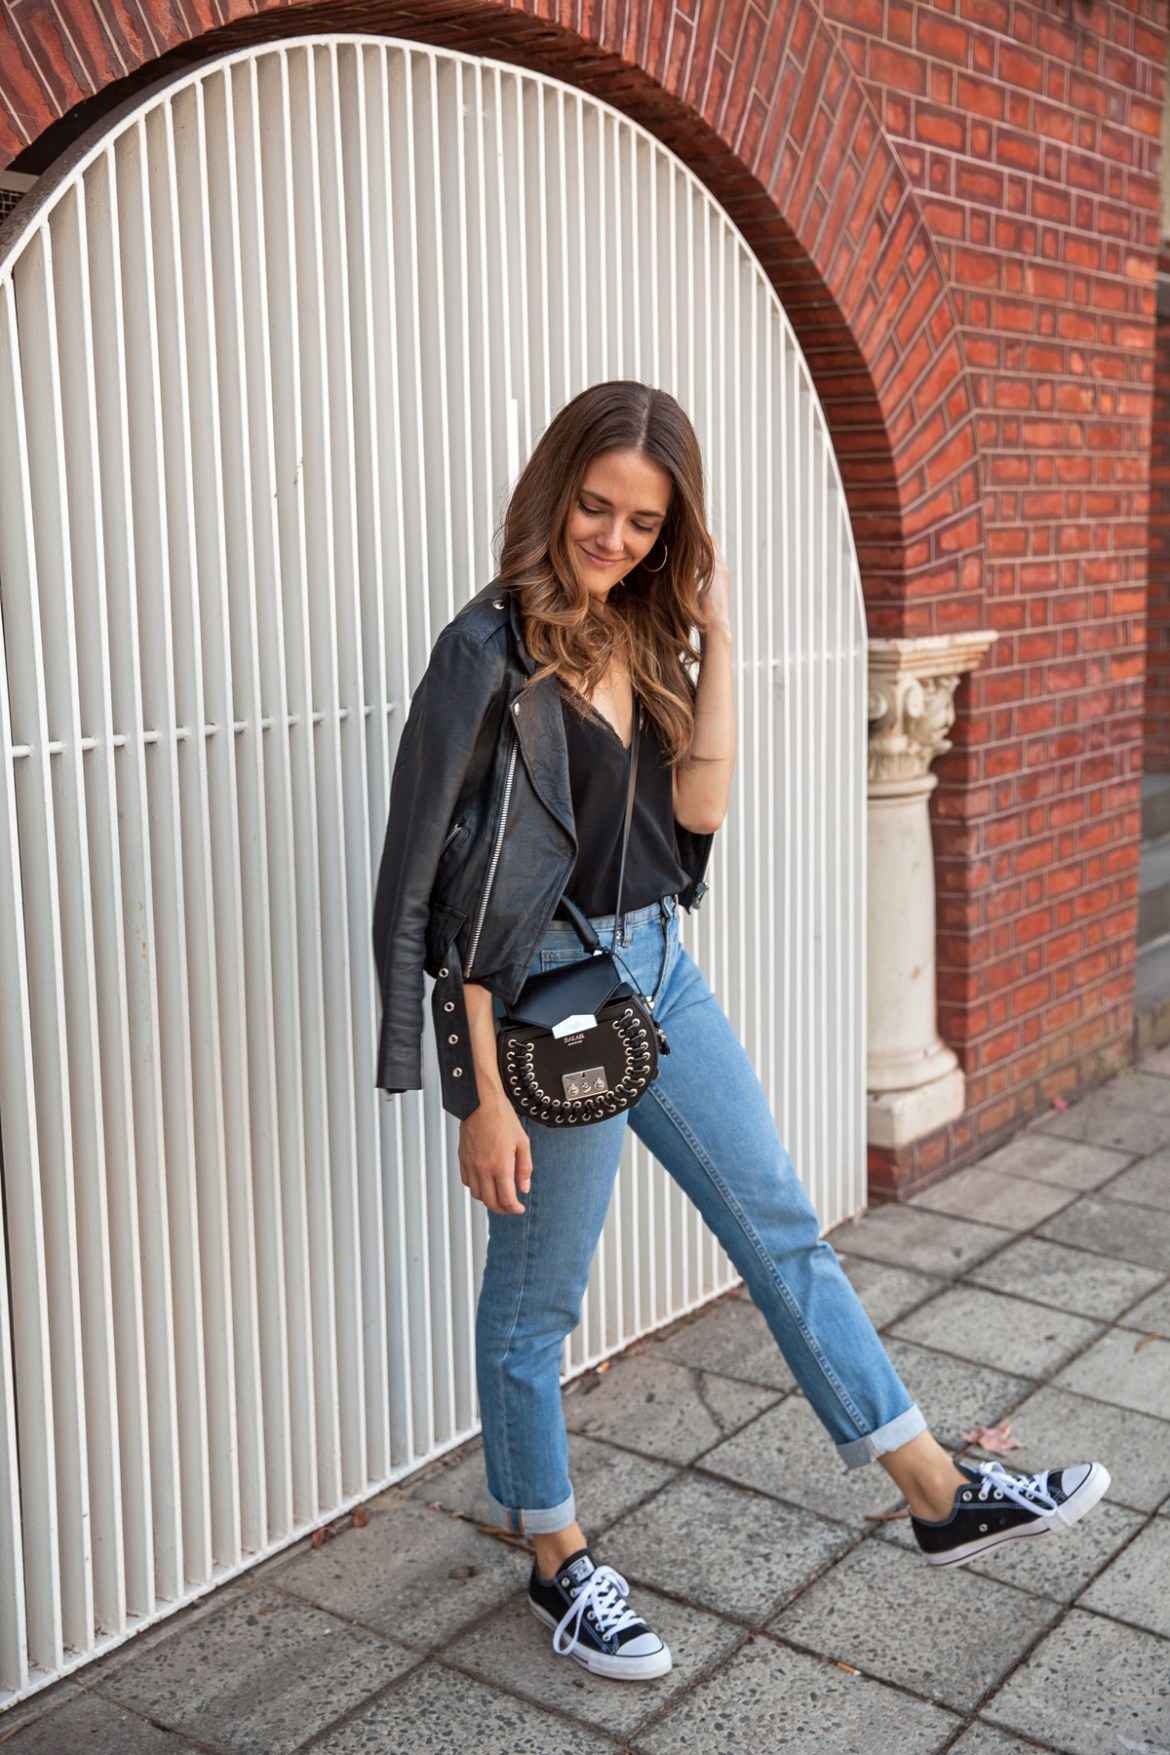 Everlane boyfriend jeans worn by Australian fashion blogger Jenelle from Inspiring Wit with leather jacket, Converse, casual look with Salar bag